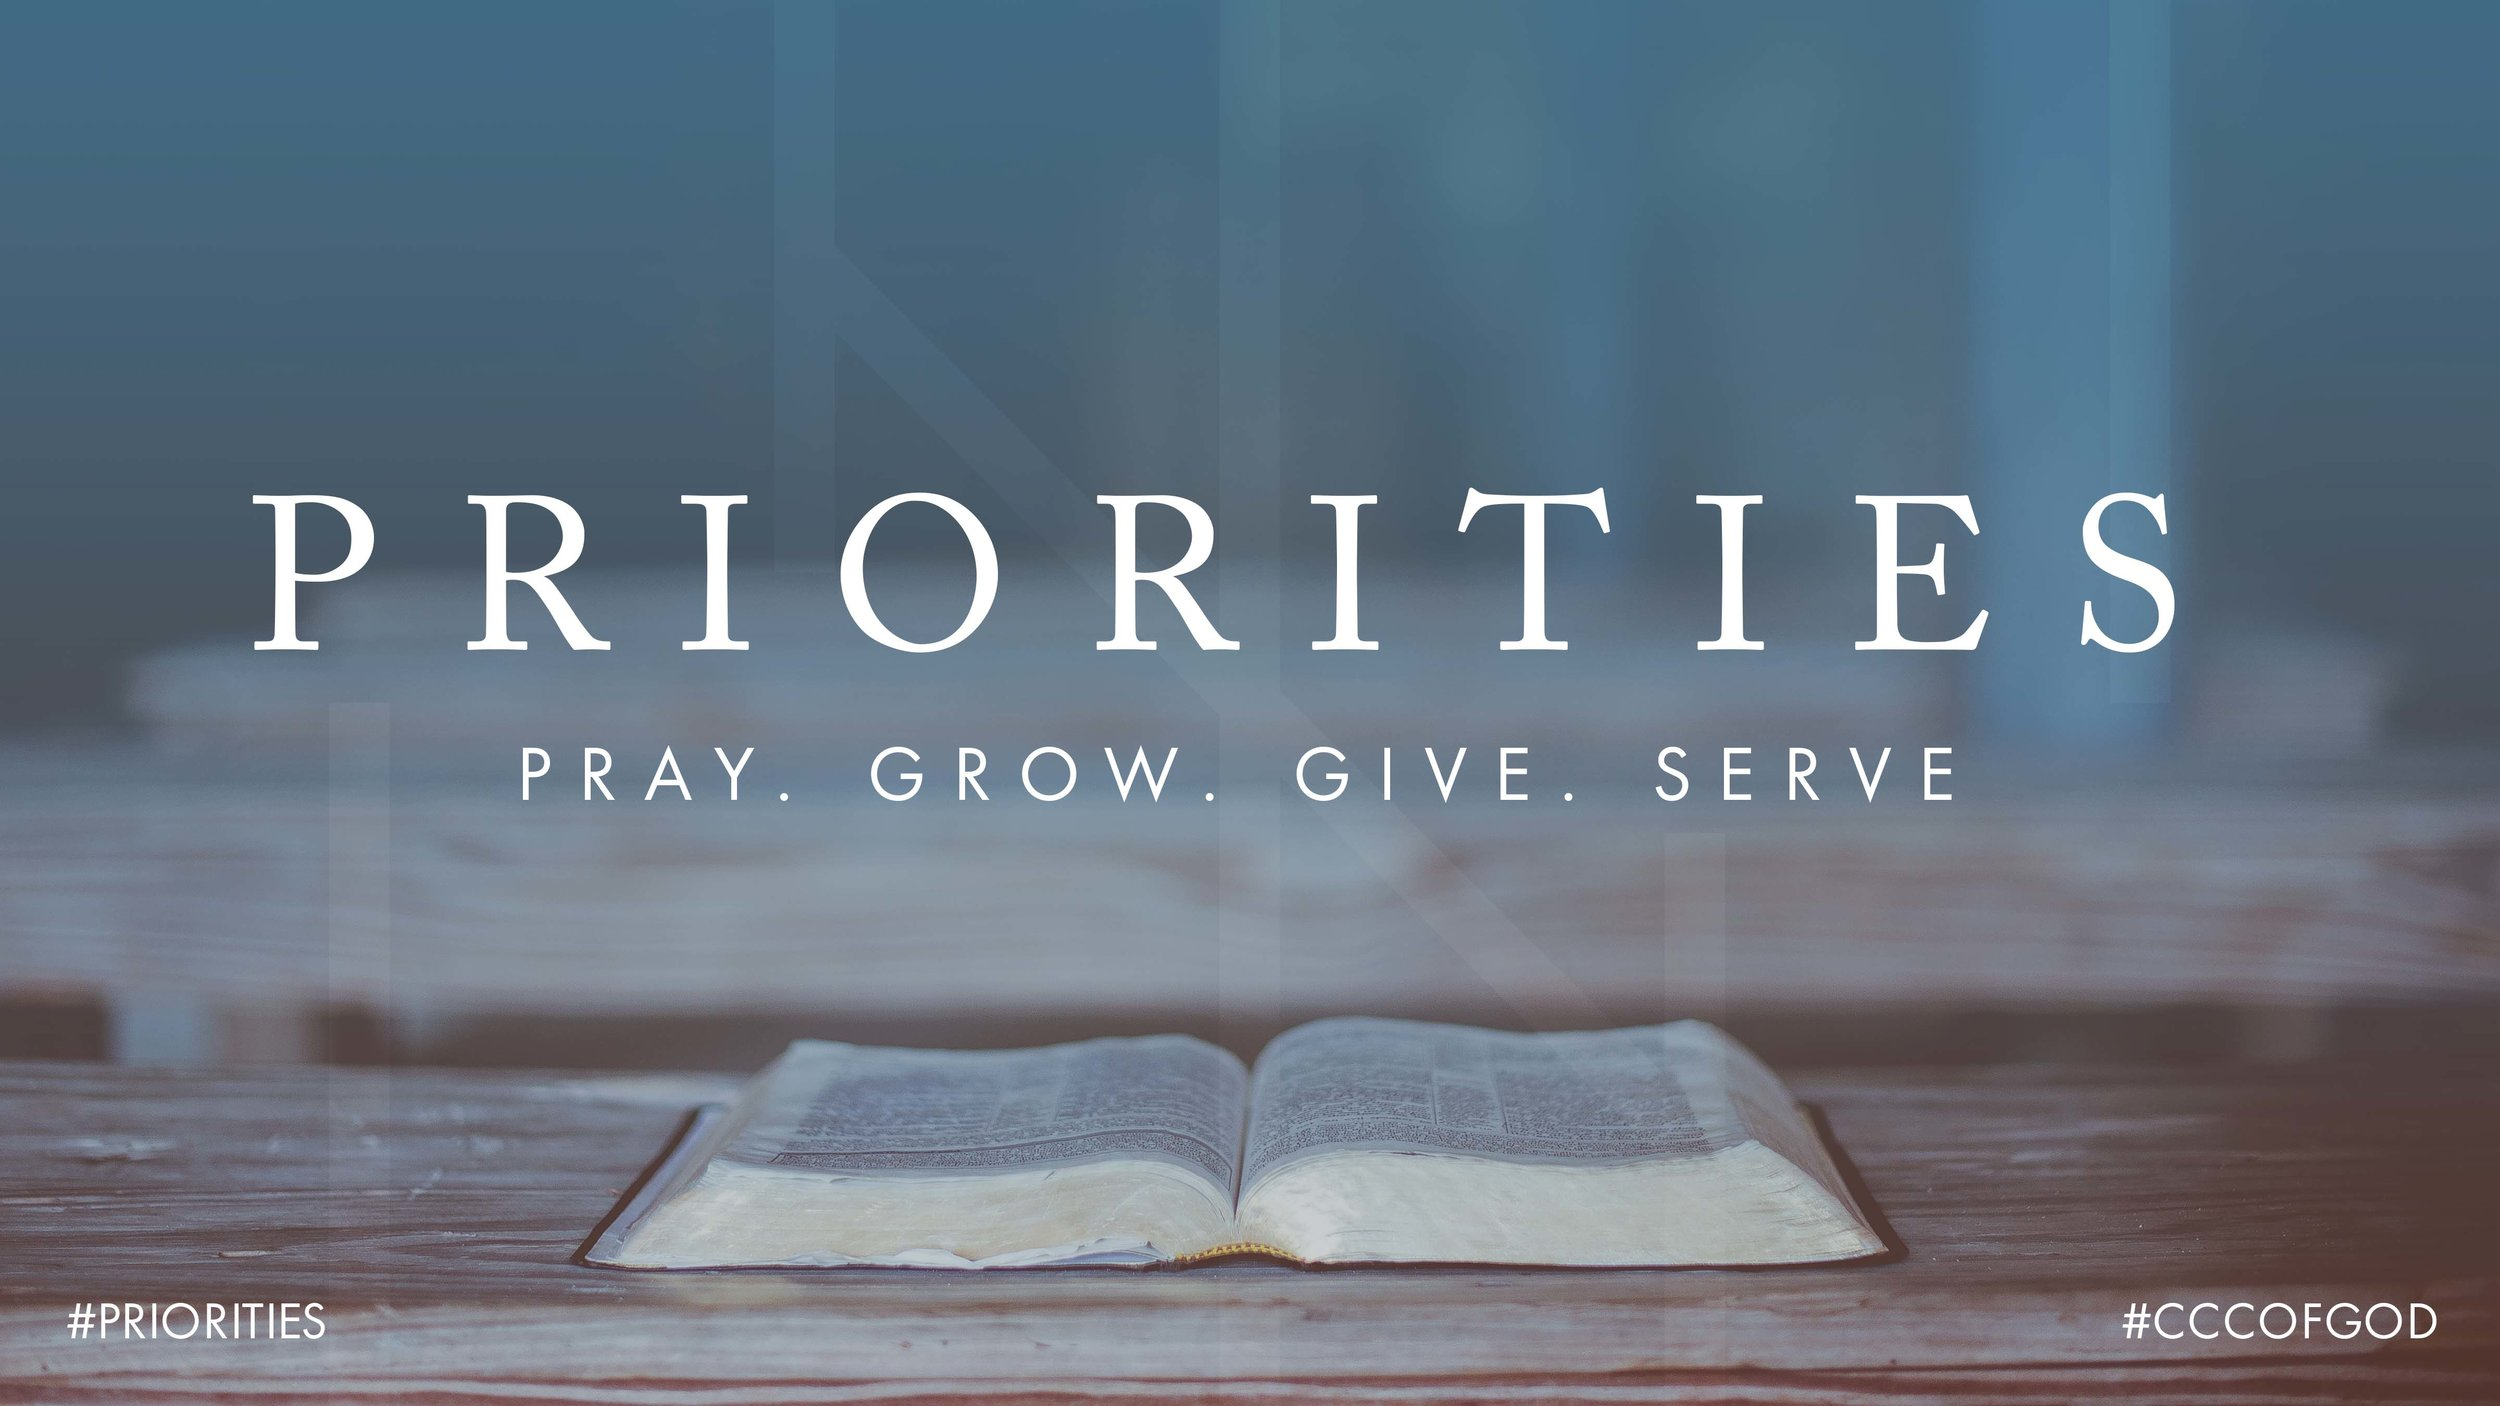 January Series    02/03/19 - SERVE    01/27/19 - GIVE    01/13/19 - GROW    01/06/19 - PRAY